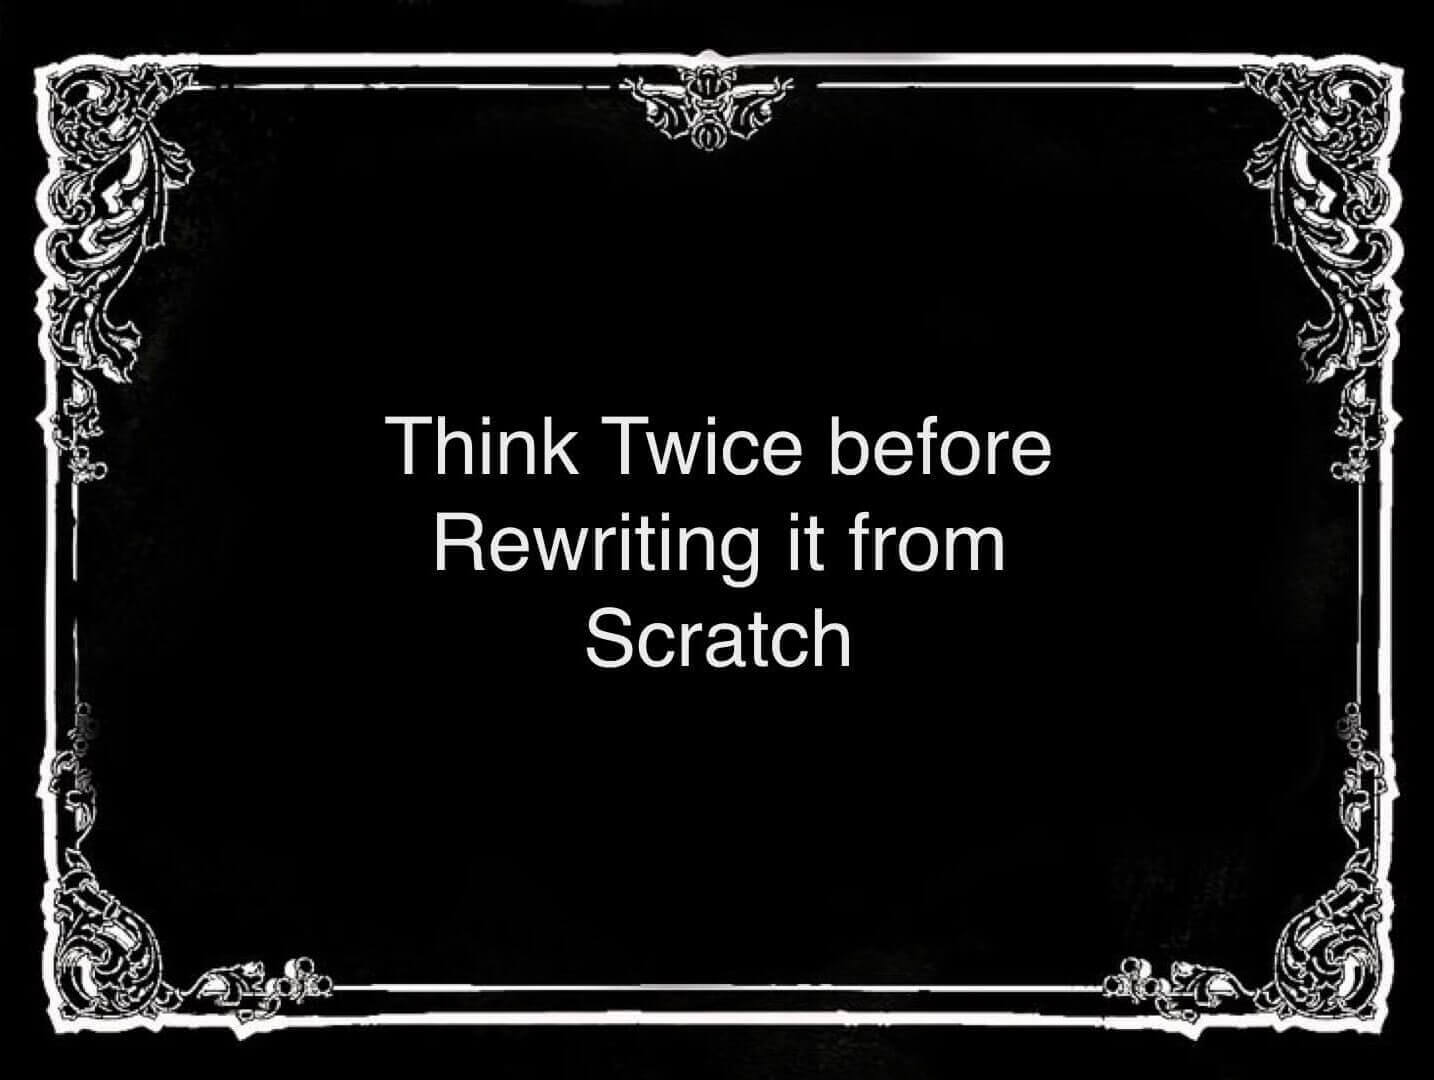 Daniel Khan advises to think twice before rewriting from scratch